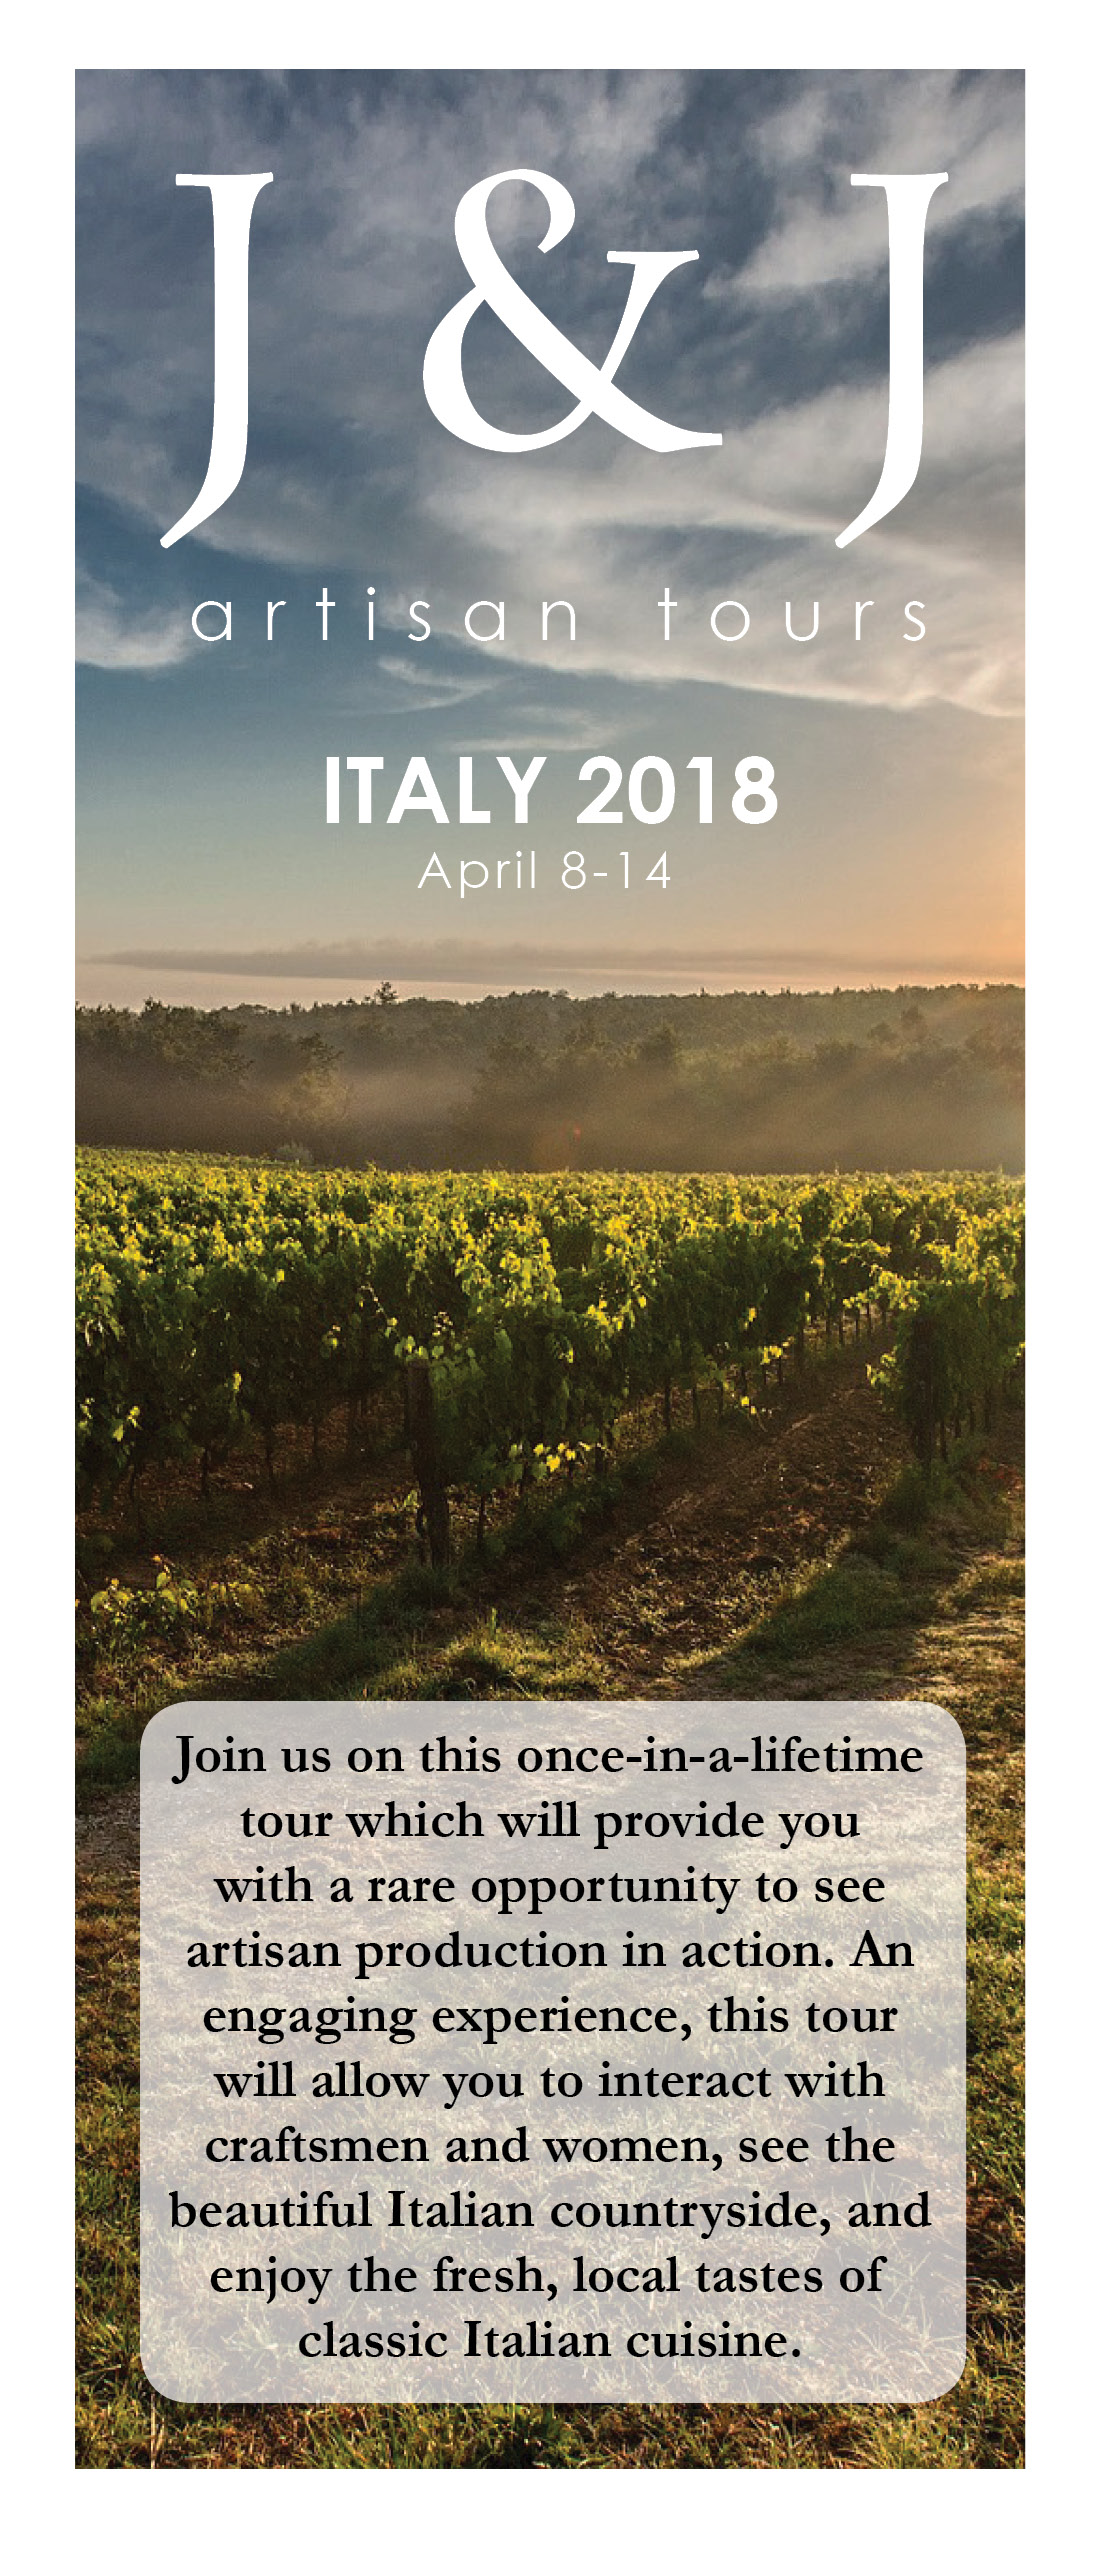 Italy 2018 Tour Brochure V092717 publish online.jpg